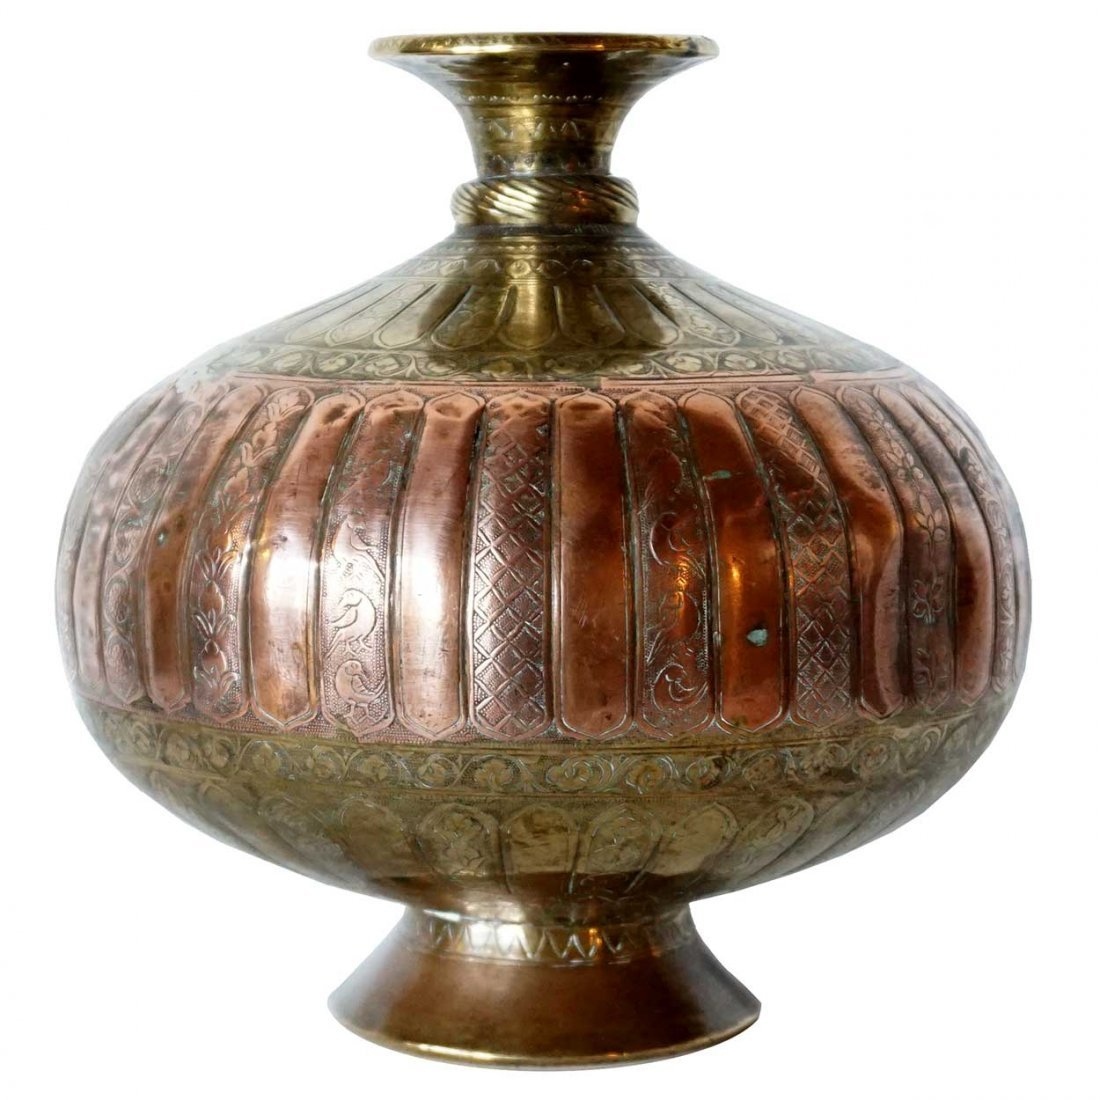 Antique Russian Engraved Brass and Copper Vessel